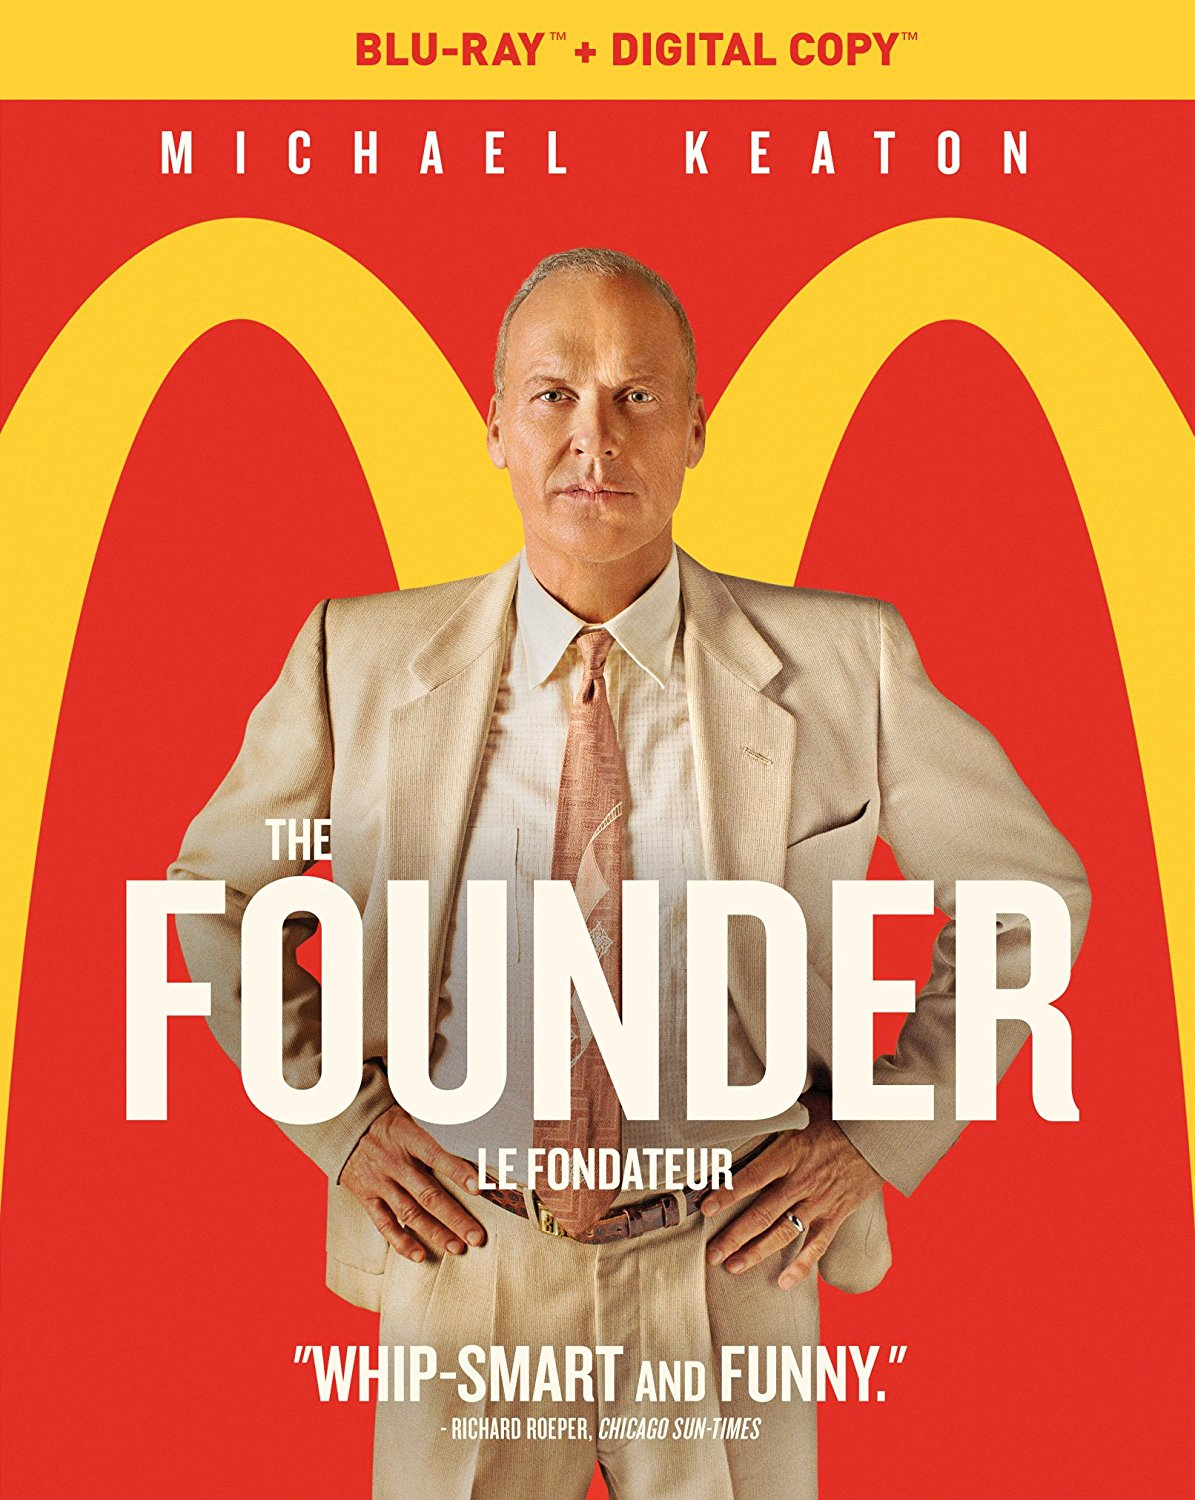 Blu-ray Review: The Founder |  One Movie, Our Views